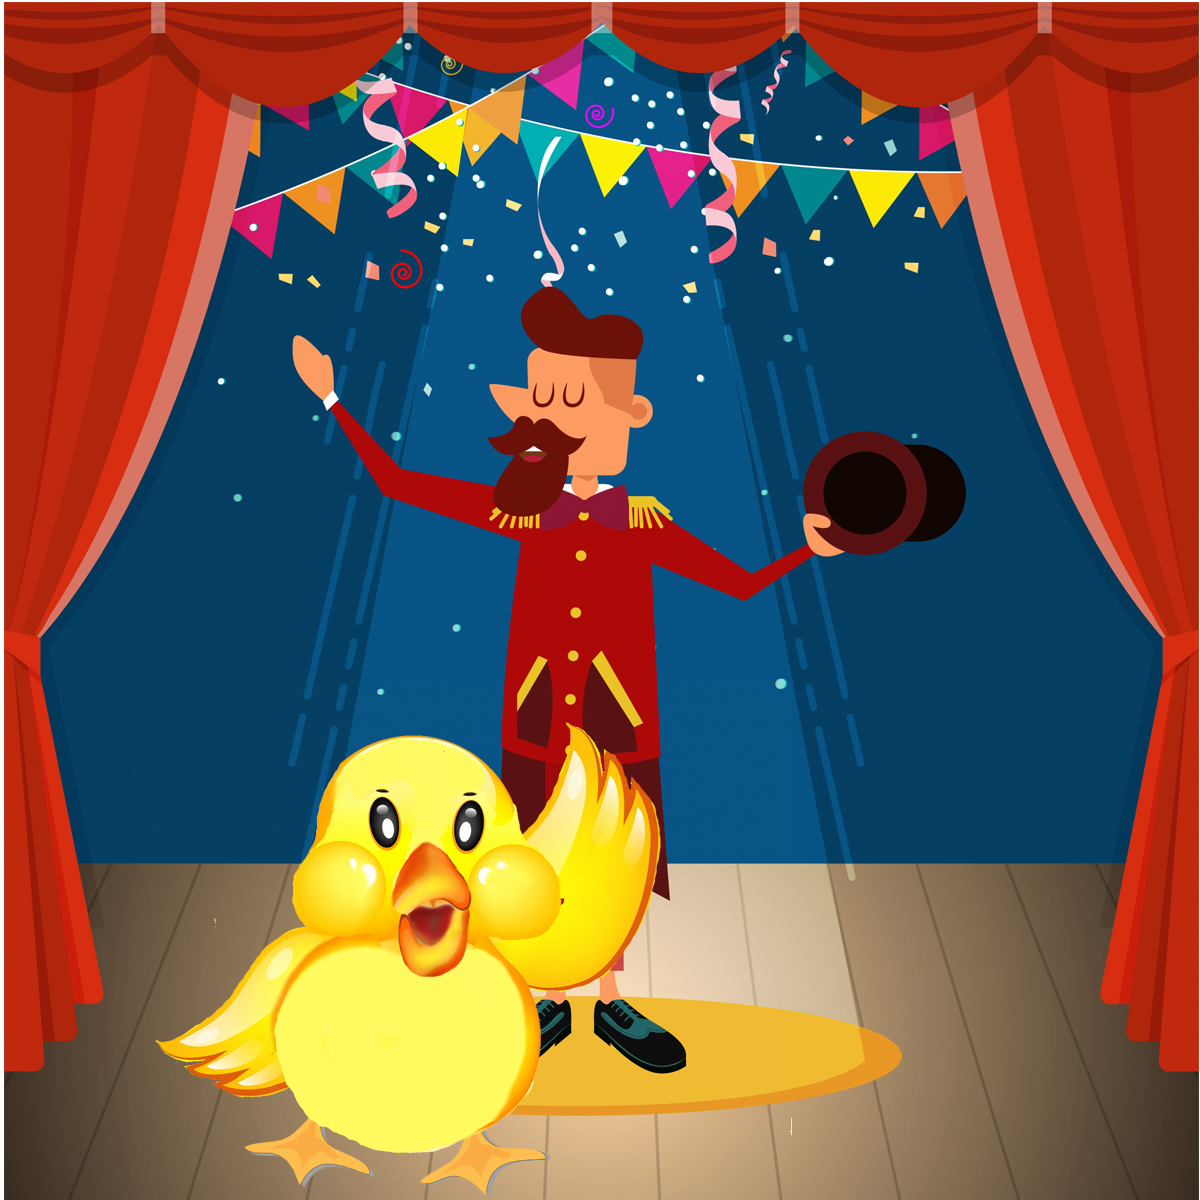 A picture of a fluffy yellow toy duck upstaging the flamboyant circus manager on stage.